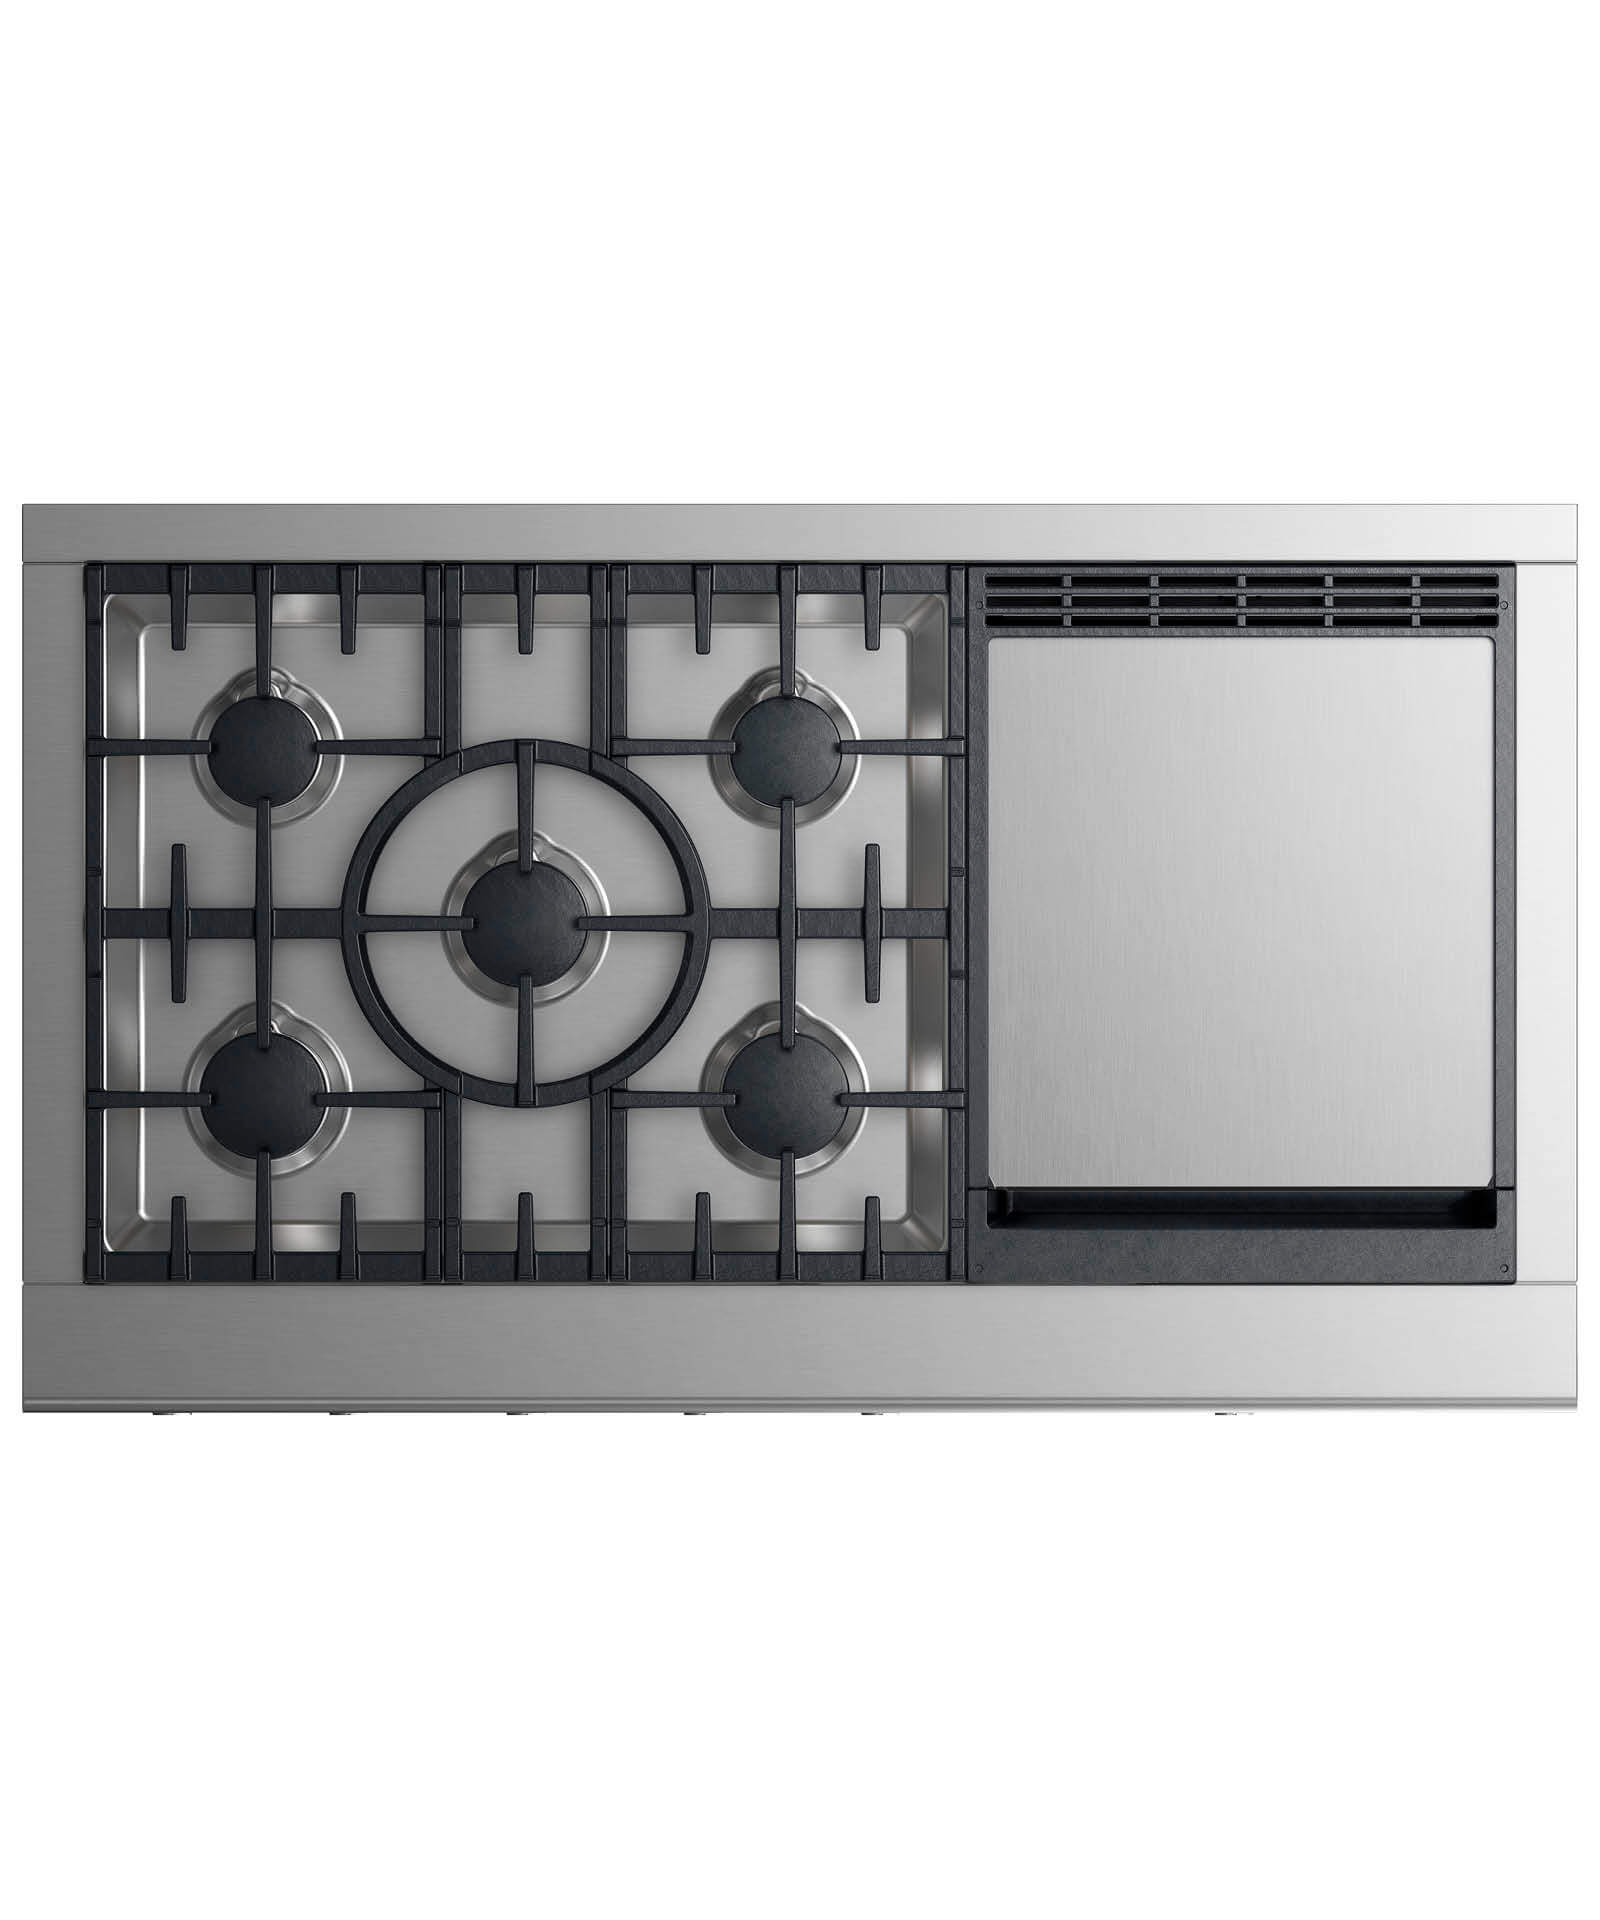 "Fisher and Paykel Gas Rangetop 48"", 5 burners with griddle"